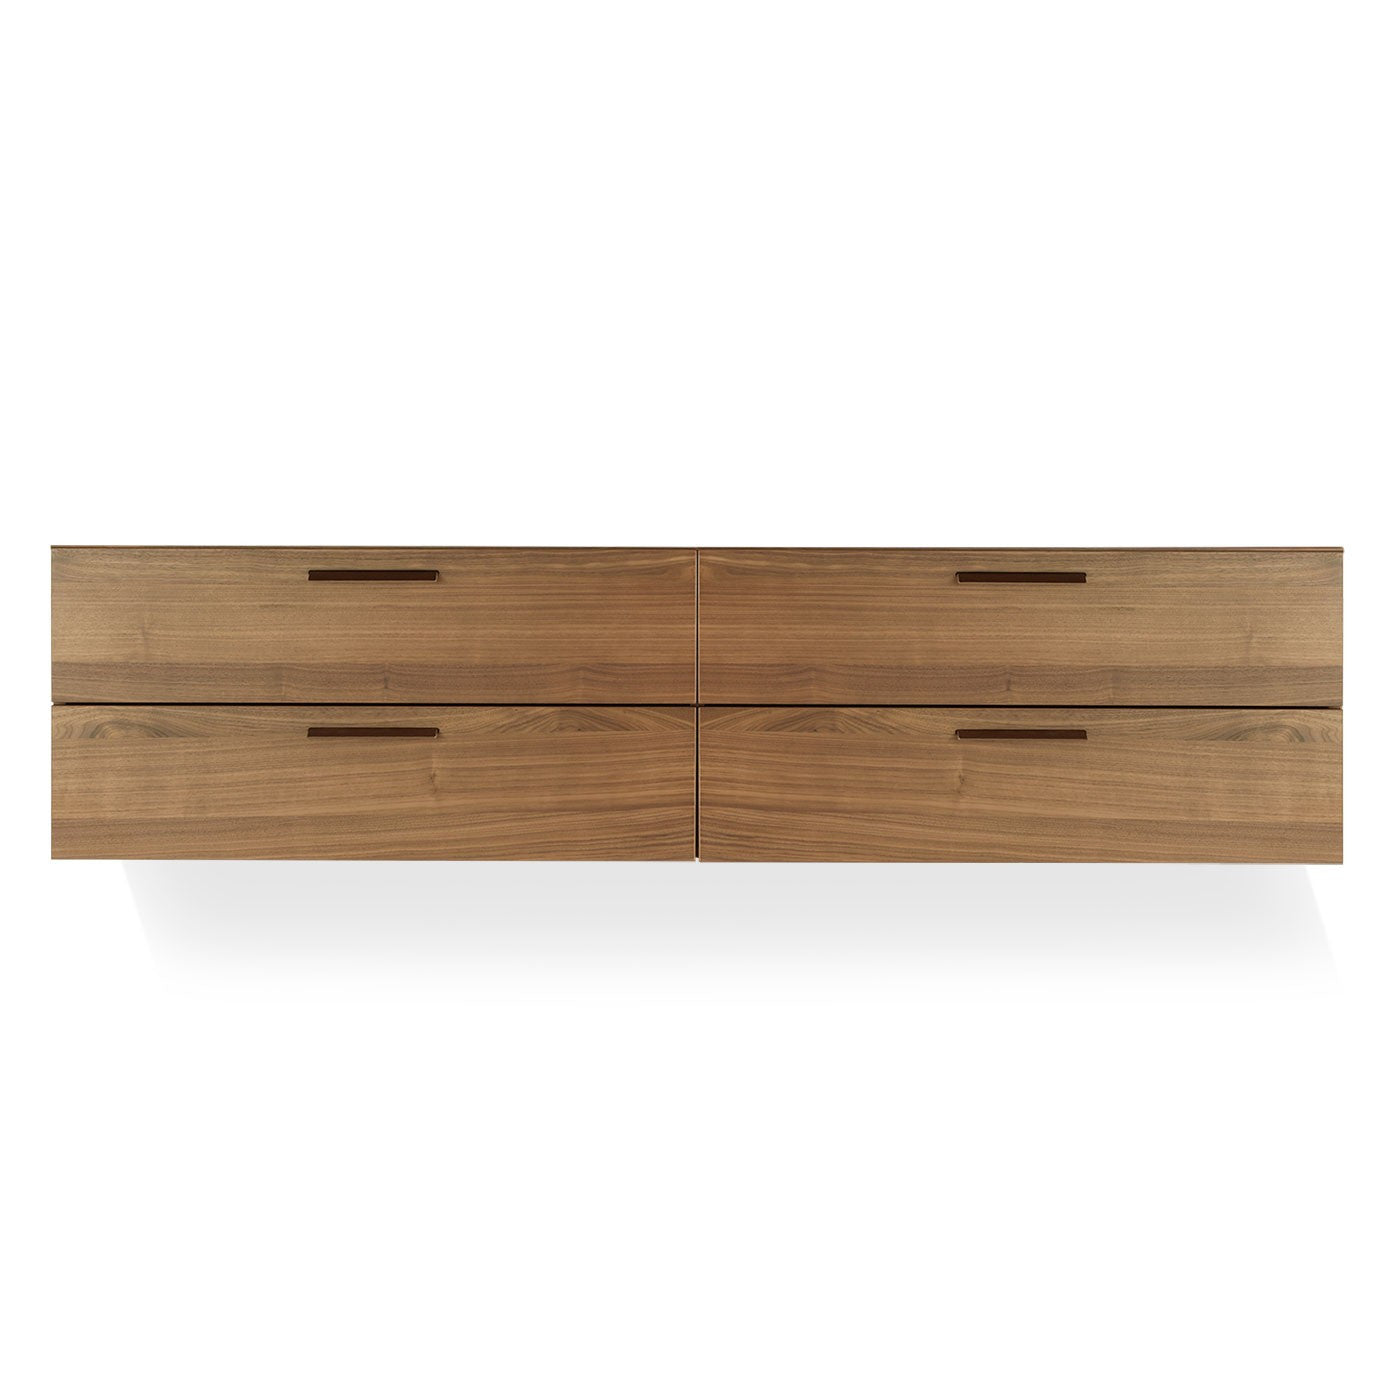 Shale 4 Drawer Wall Mounted Cabinet